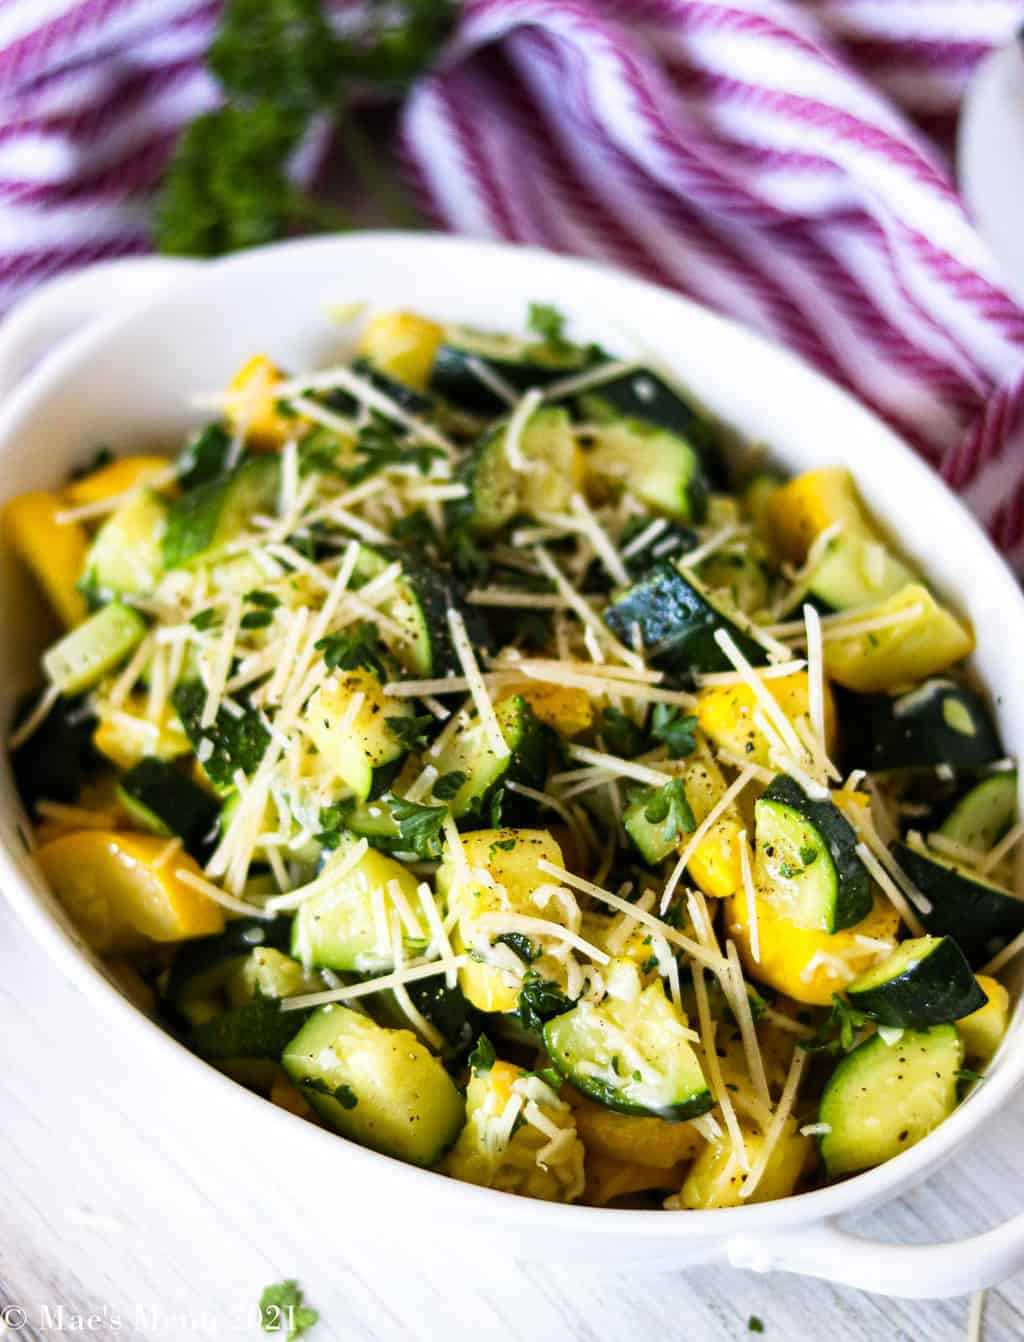 A side angle shot of zucchini and yellow squash in a white serving bowl